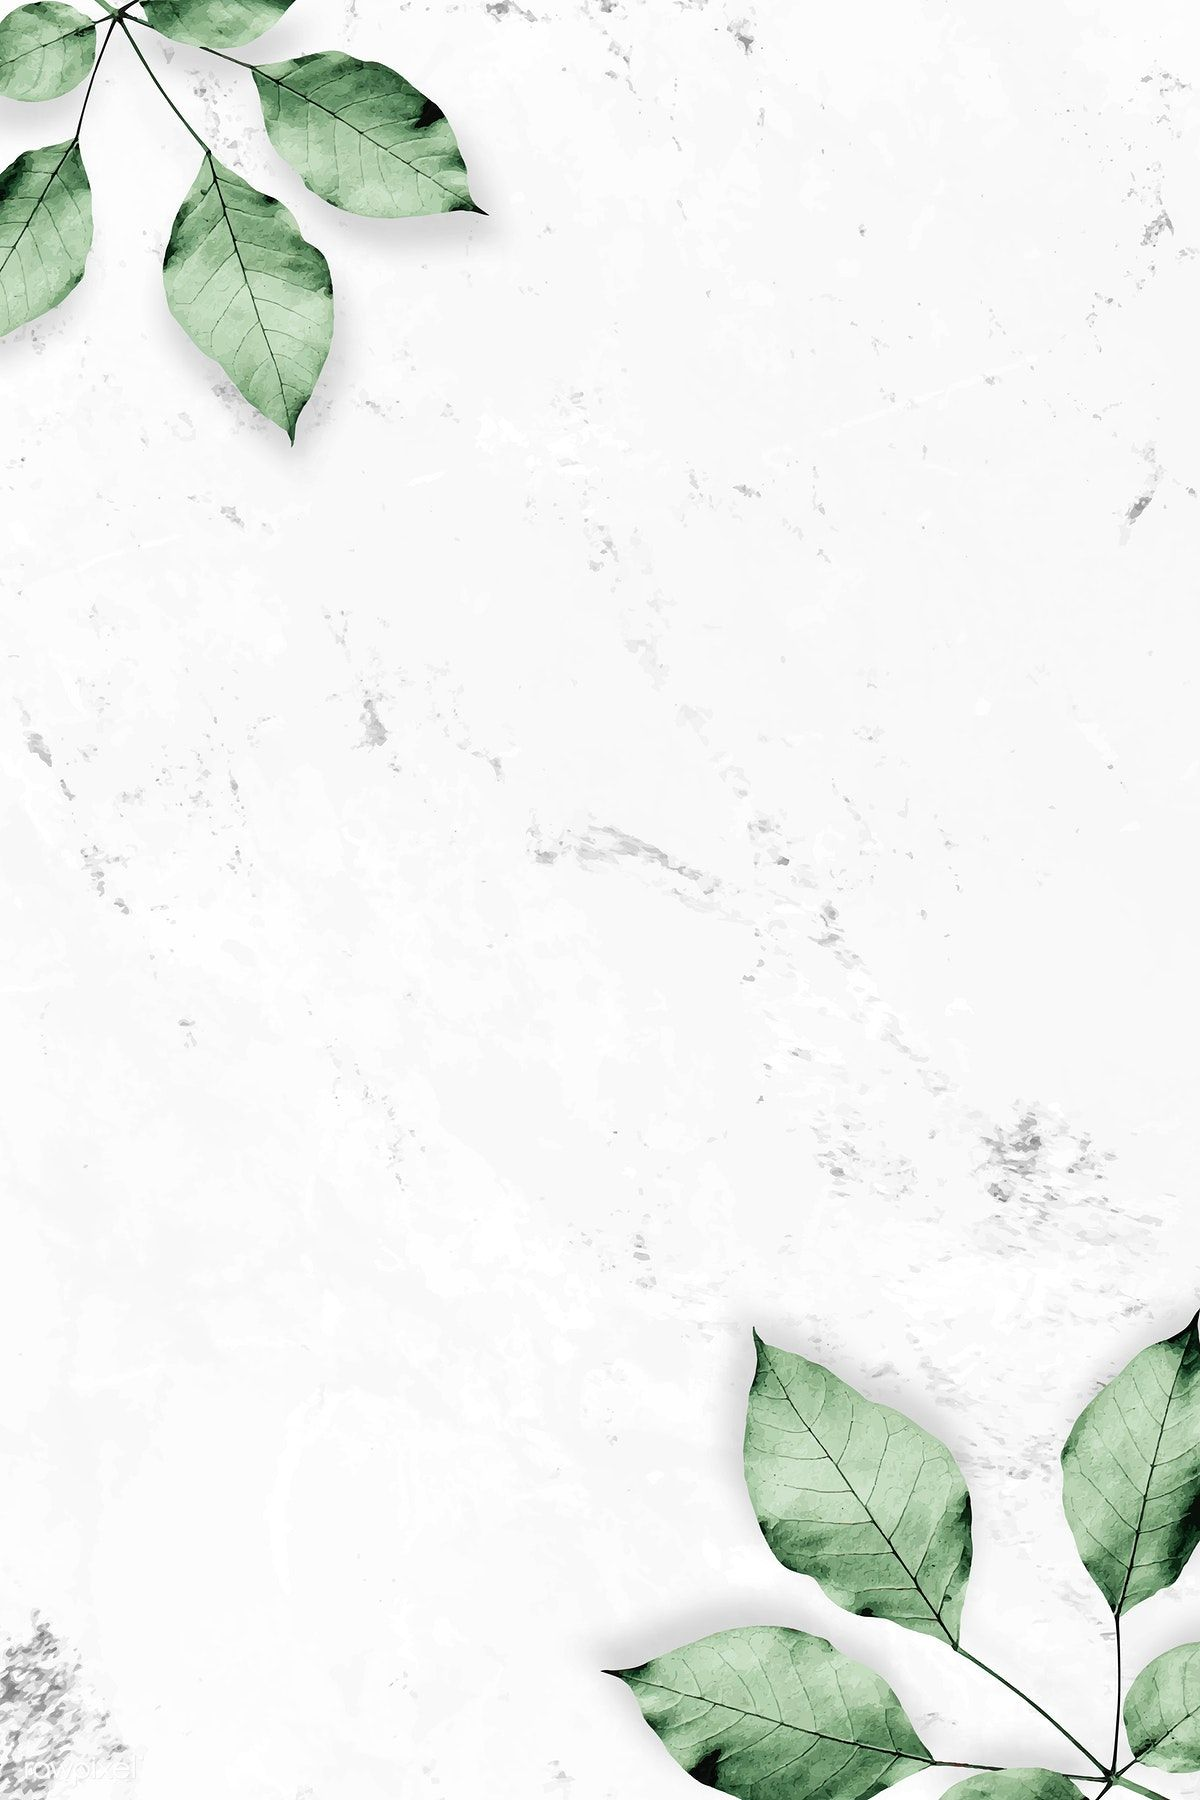 Download premium vector of Foliage pattern on marble textured background #marbletexture